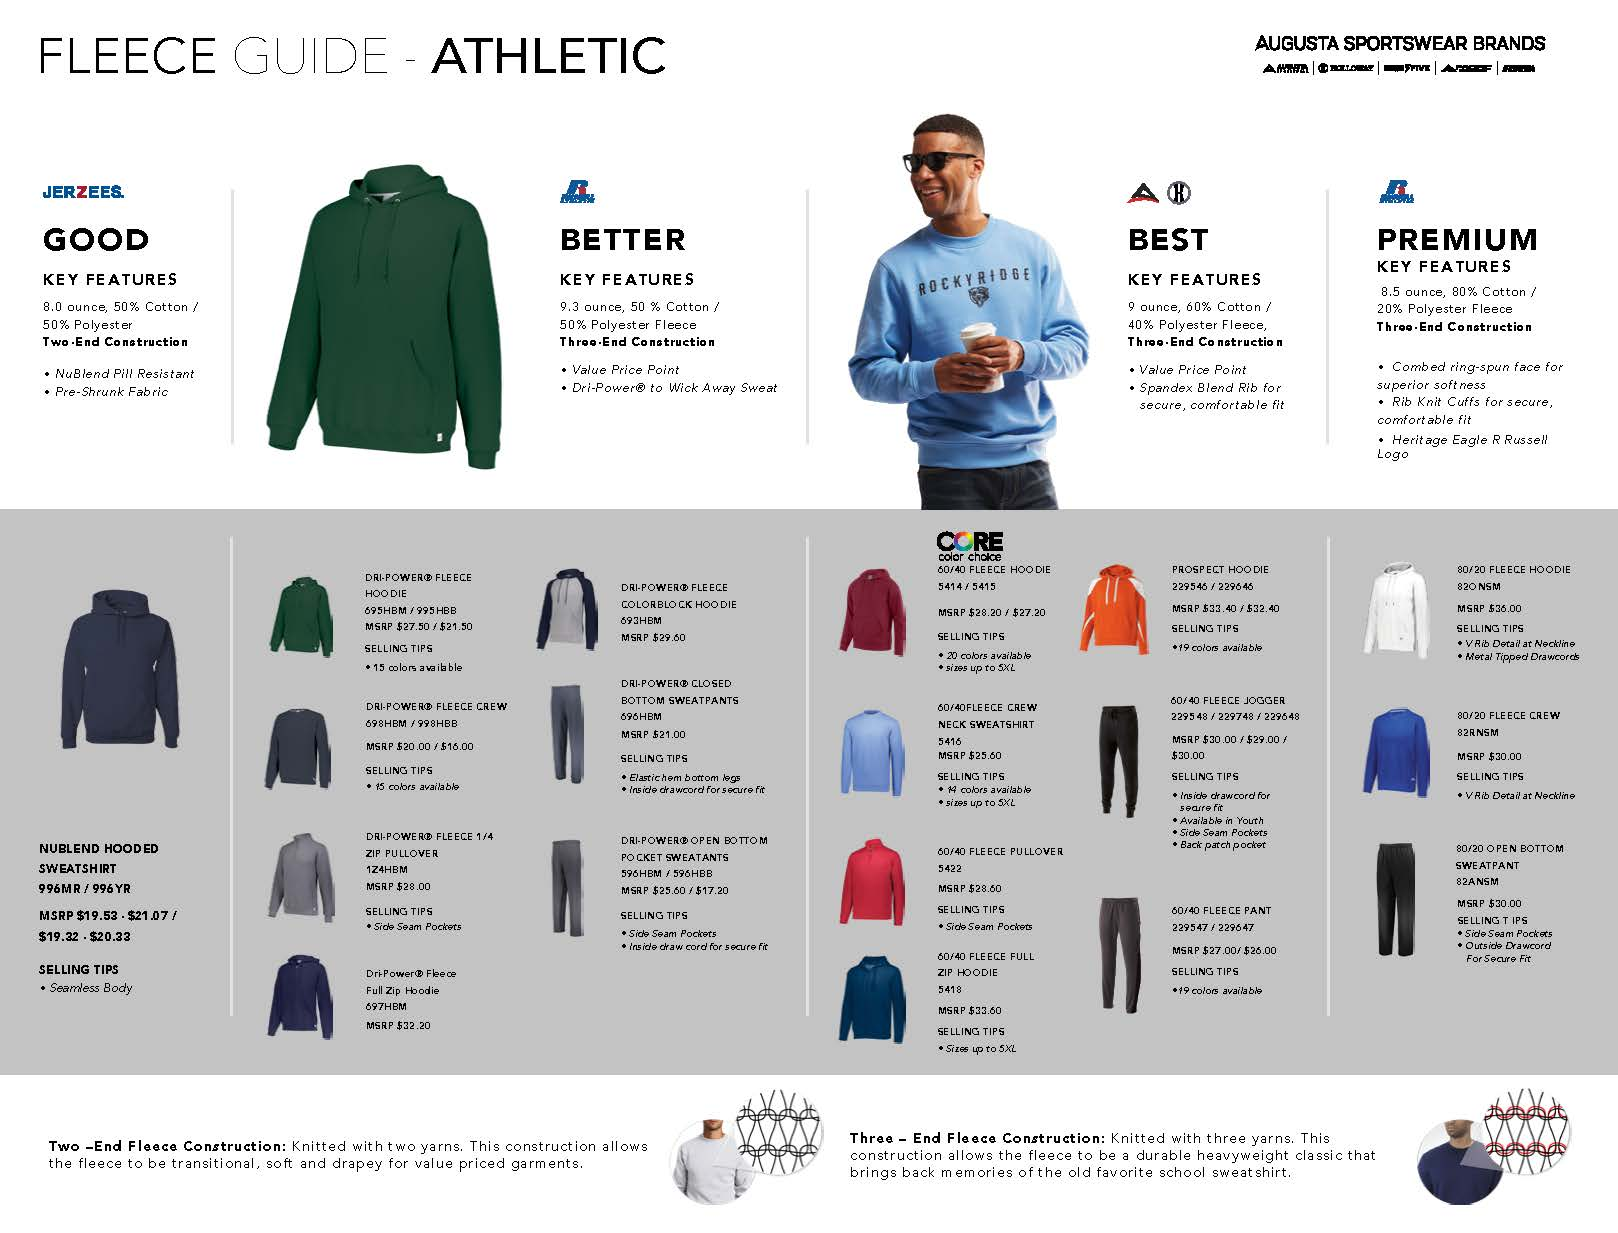 Athletic Fleece guide; Good, Better, Best